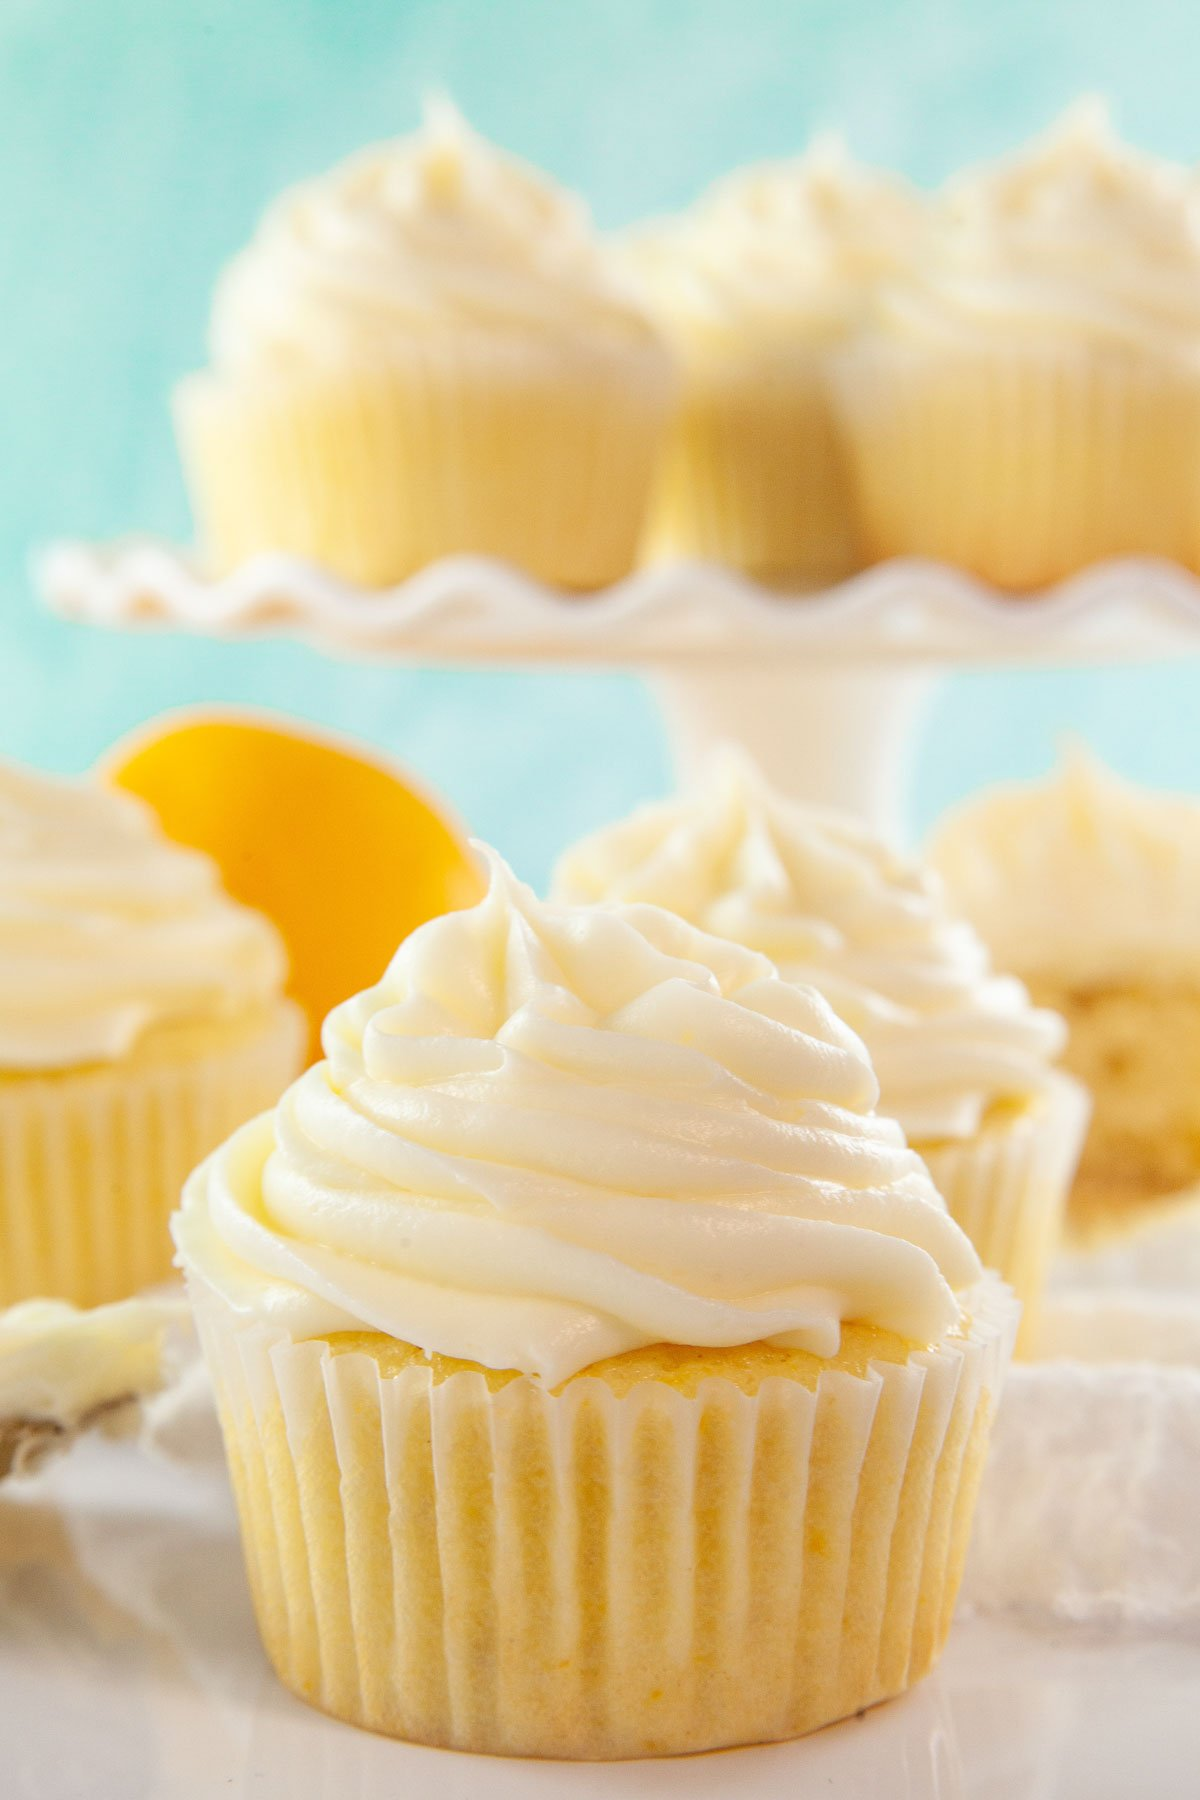 One lemon cupcake with a cake stand full behind it